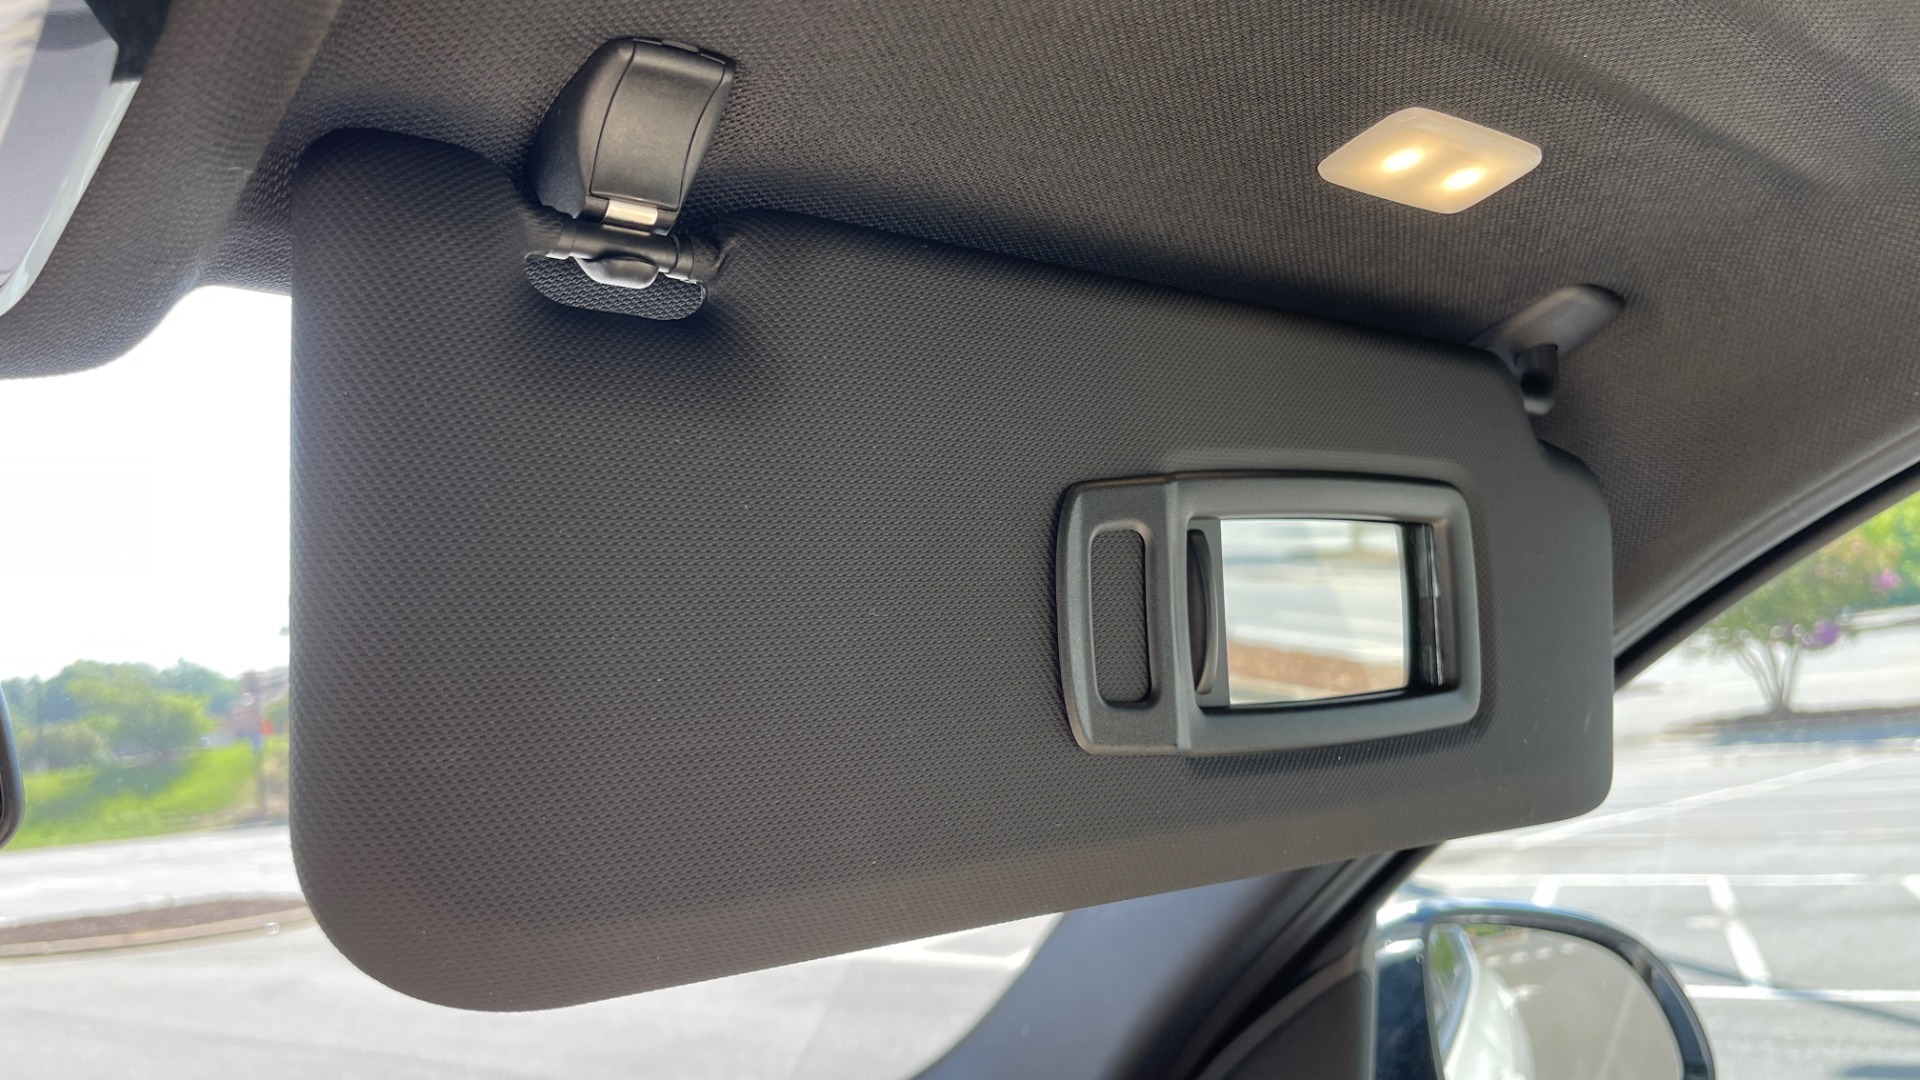 Used 2018 BMW X3 XDRIVE30I CONVENIENCE PKG / HEATED FRONT SEATS / REARVIEW for sale $36,595 at Formula Imports in Charlotte NC 28227 48